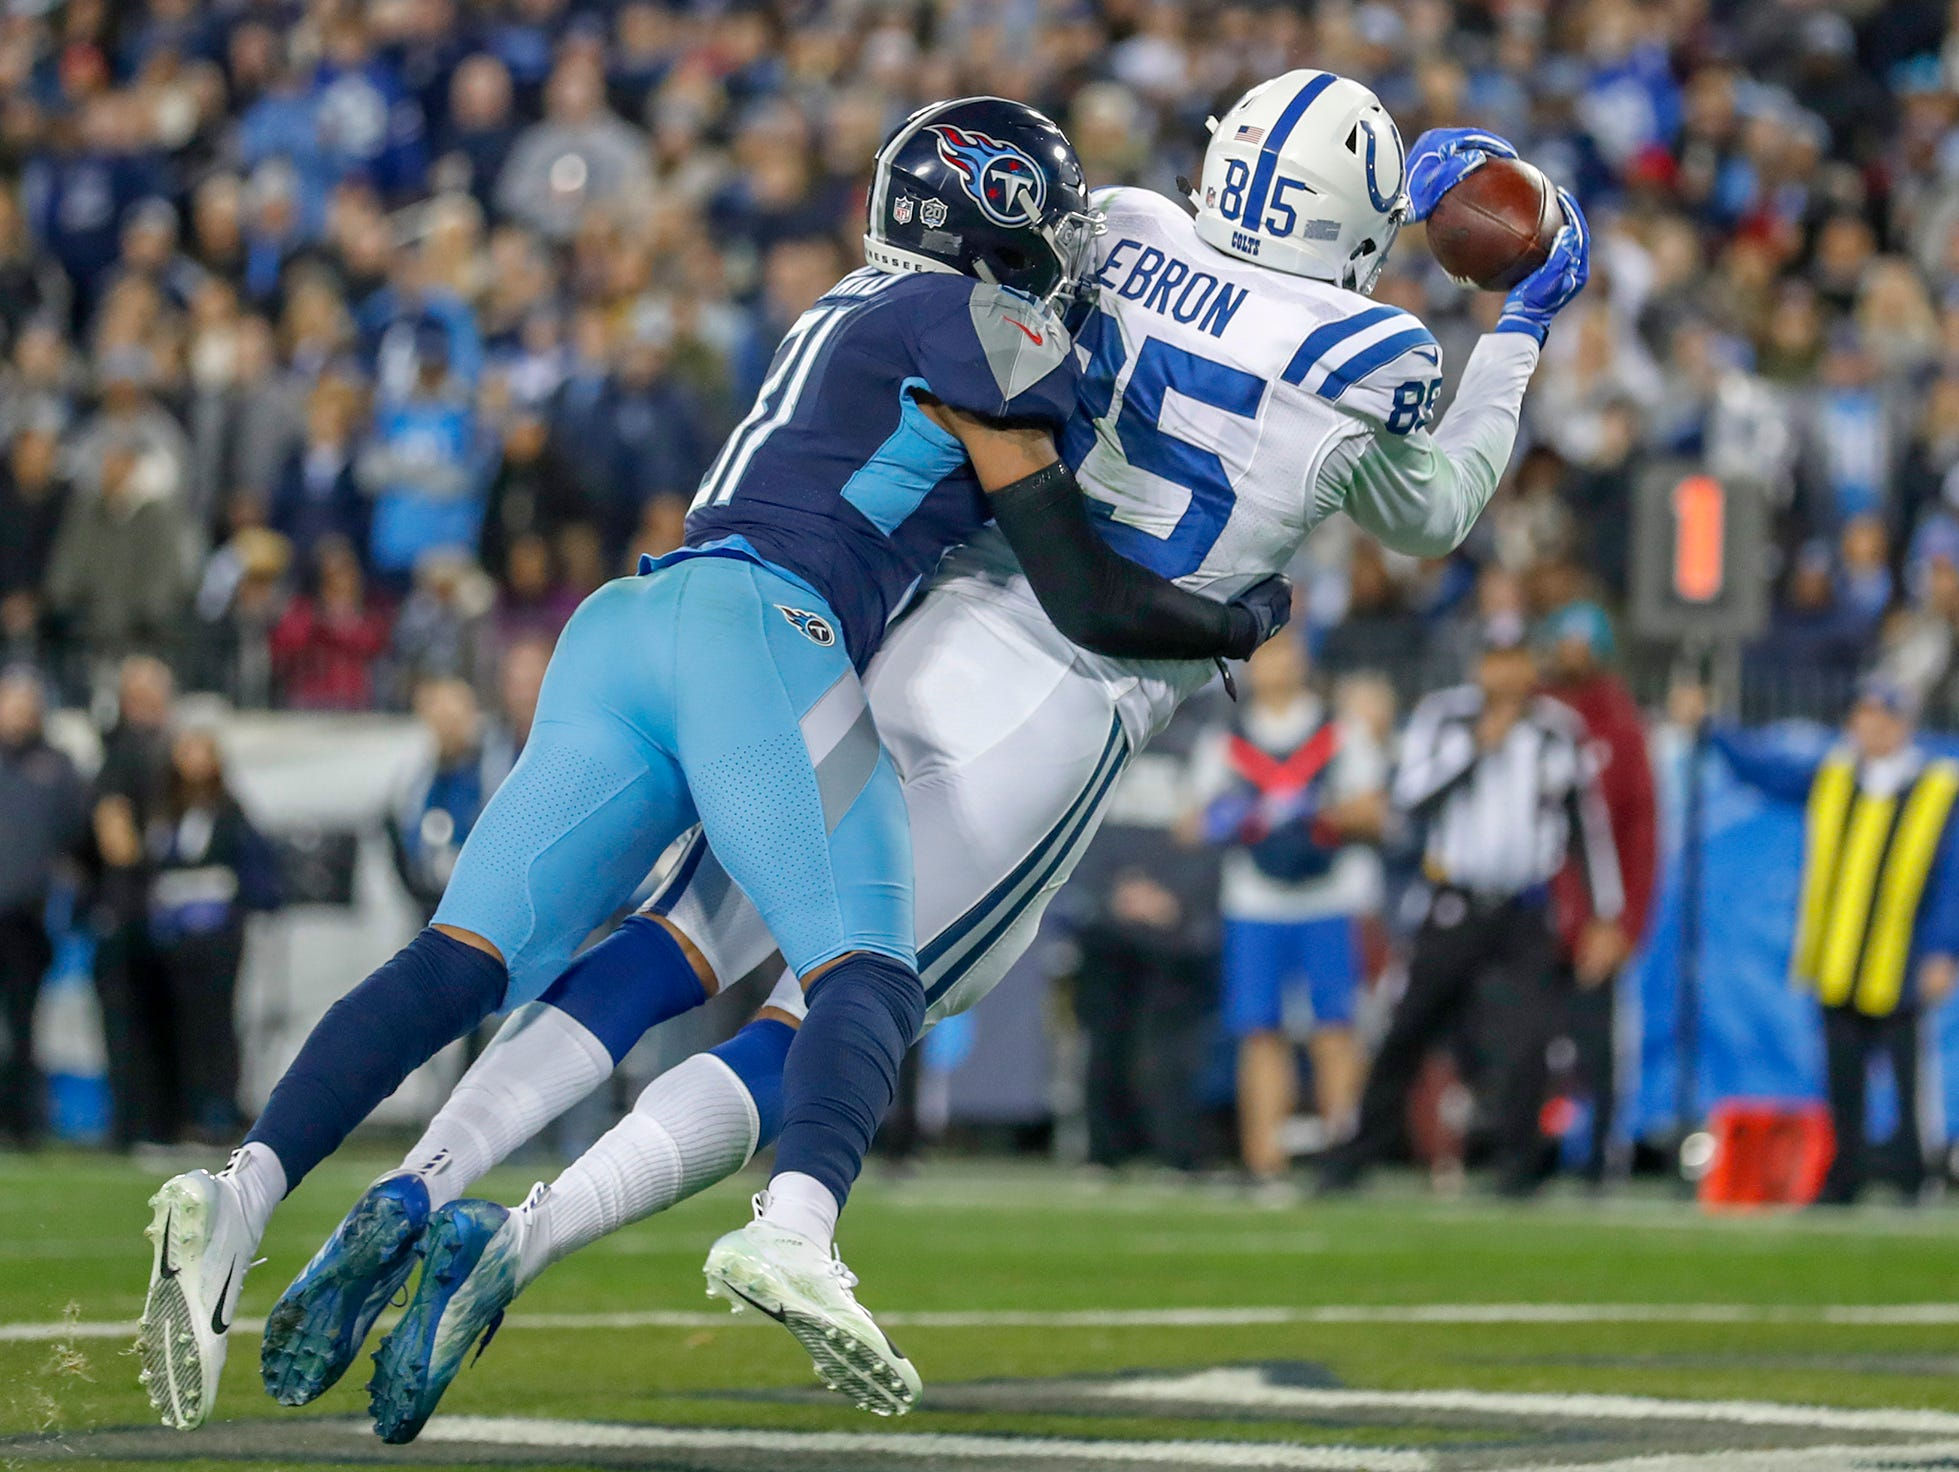 Indianapolis Colts tight end Eric Ebron (85) pulls in a touchdown pass against the Tennessee Titans at Nissan Stadium in Nashville, Tenn., on Sunday, Dec. 23, 2018.